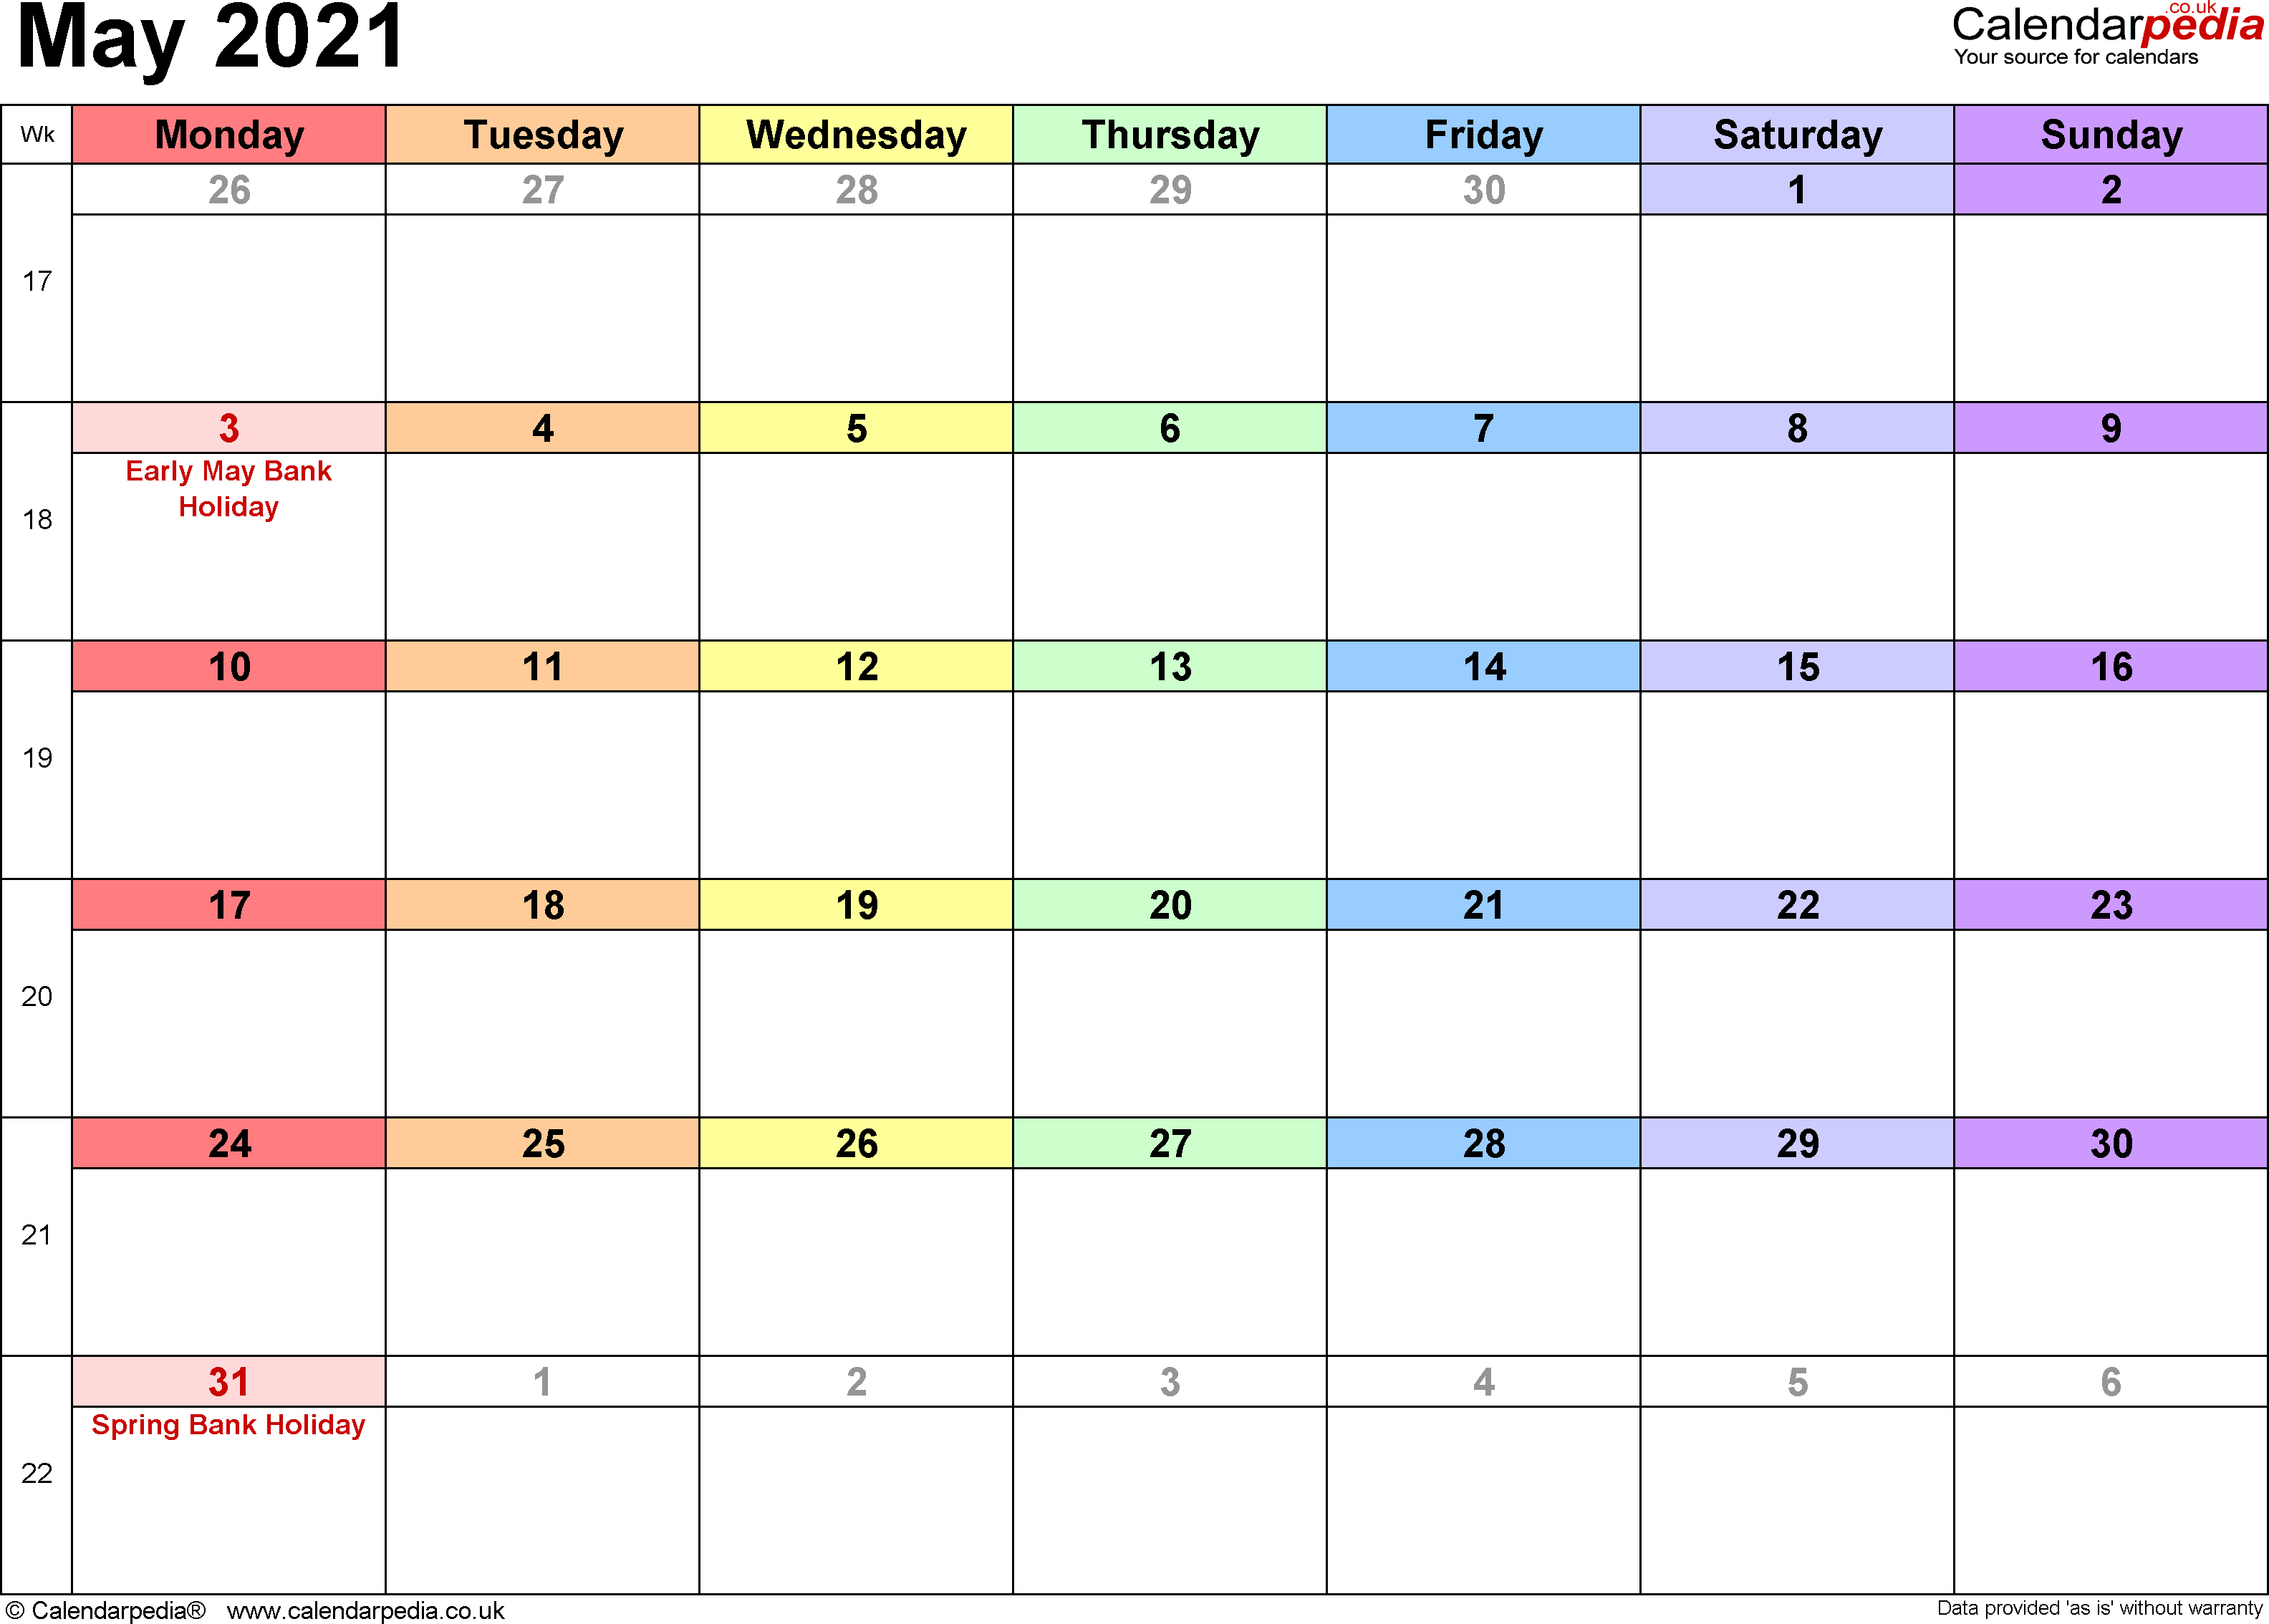 Calendar May 2021, landscape orientation, 1 page, with UK bank holidays and week numbers